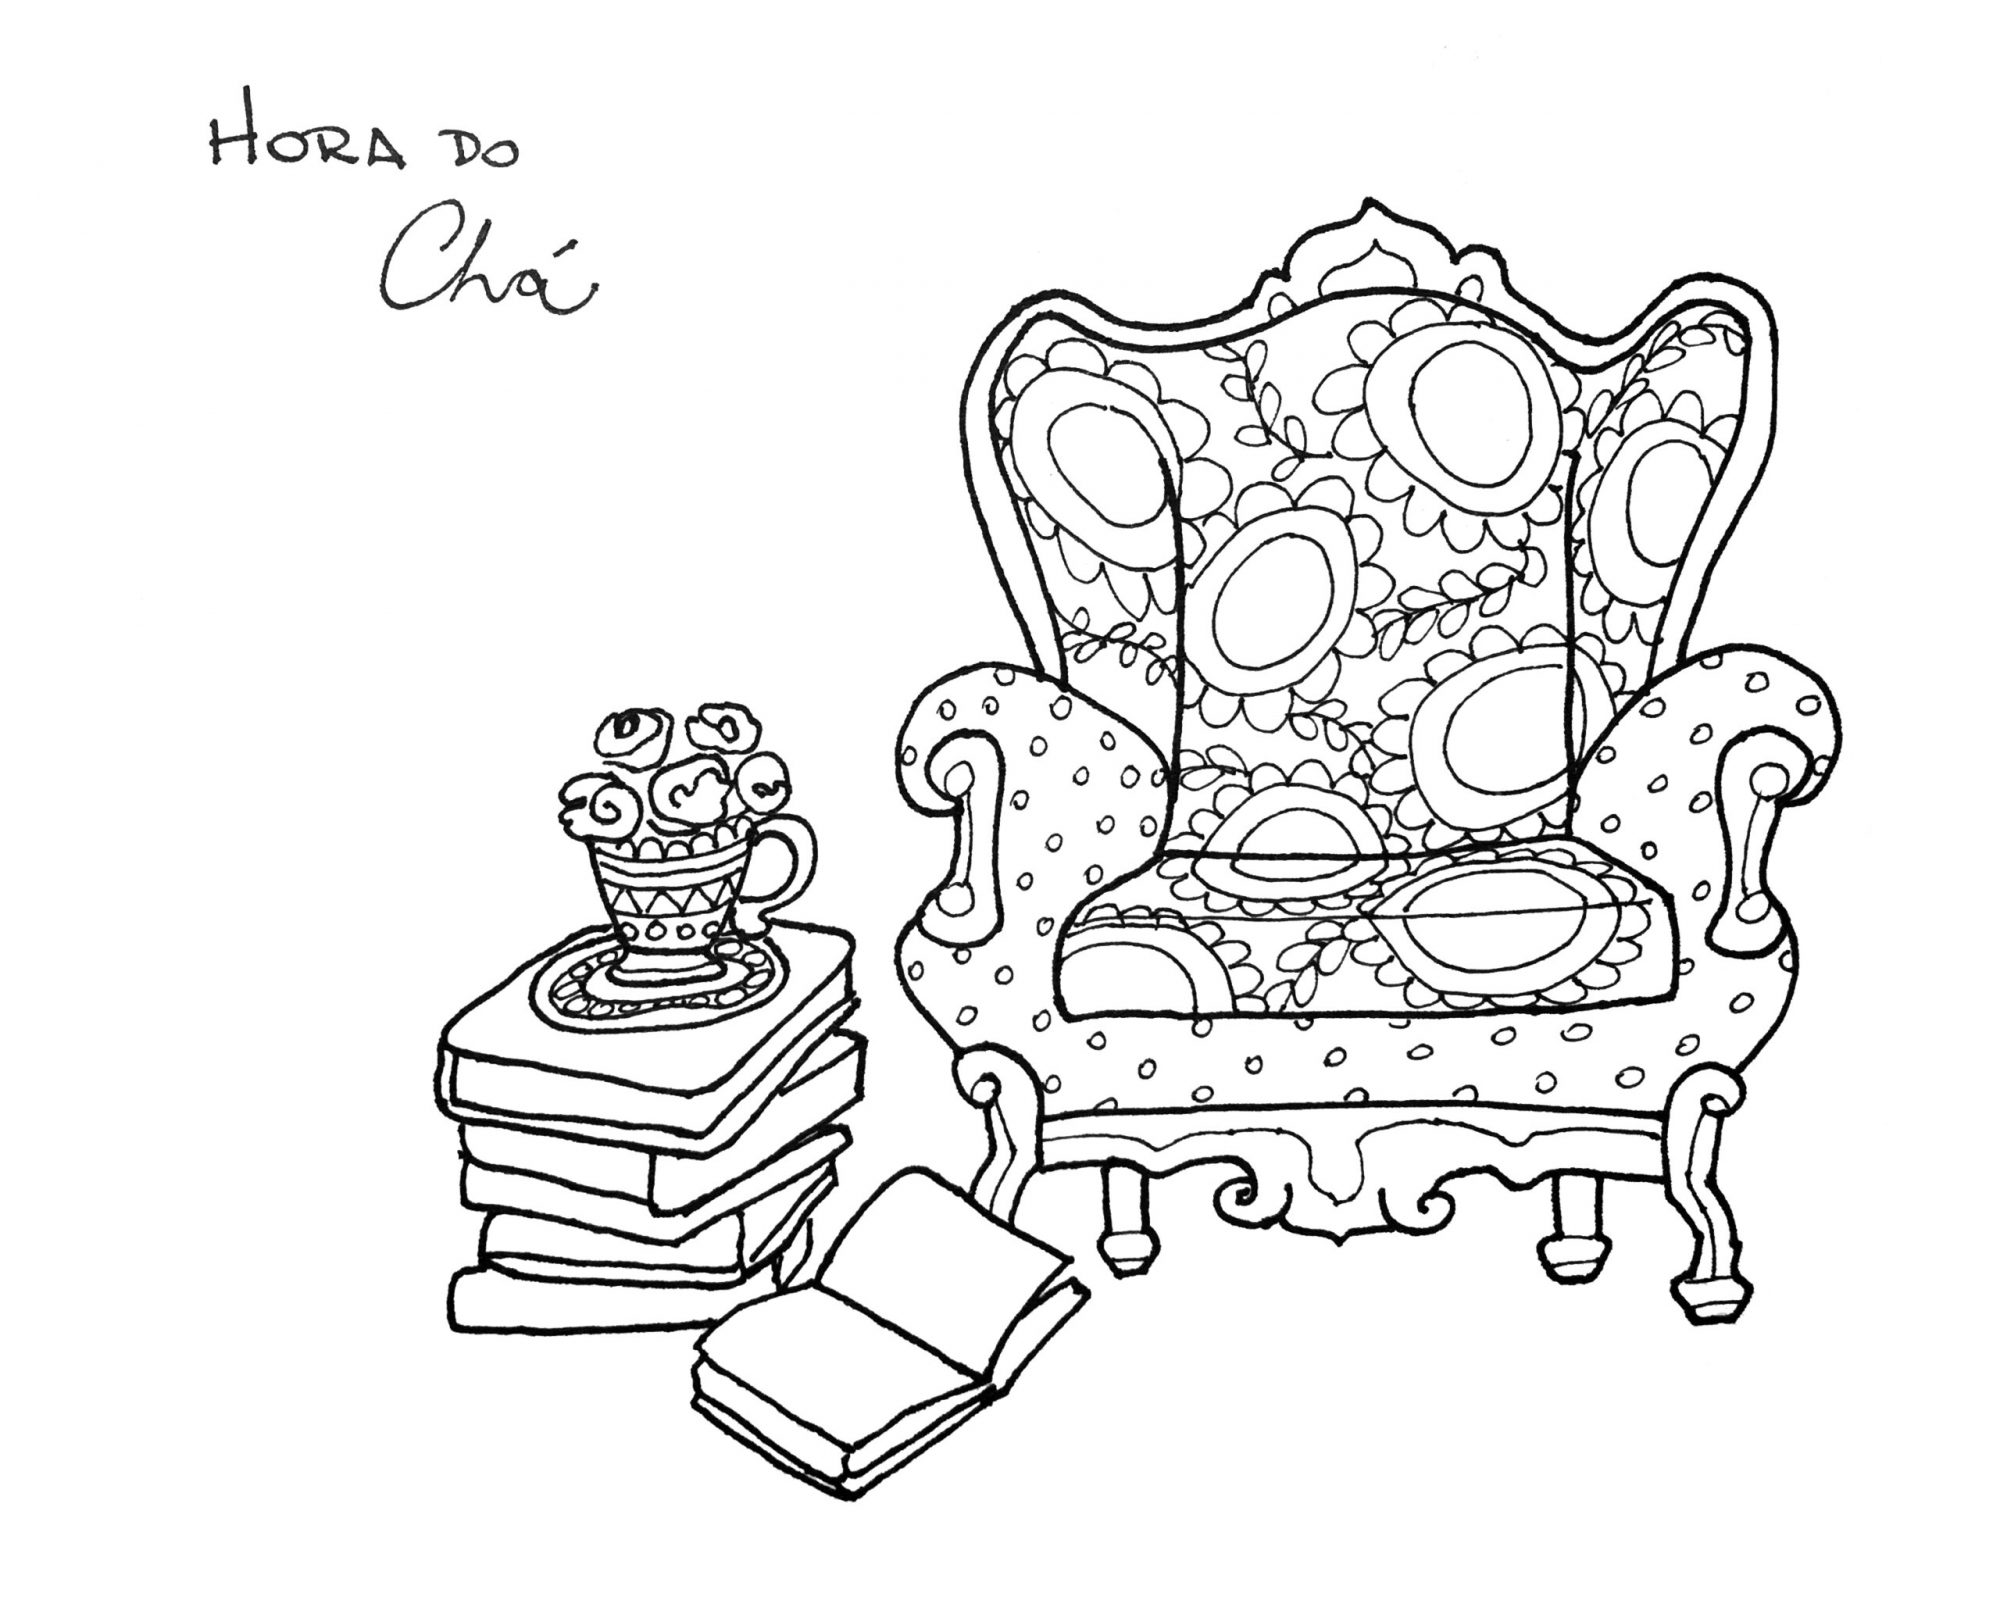 Chair and Books Coloring Page by Fer Caggiano